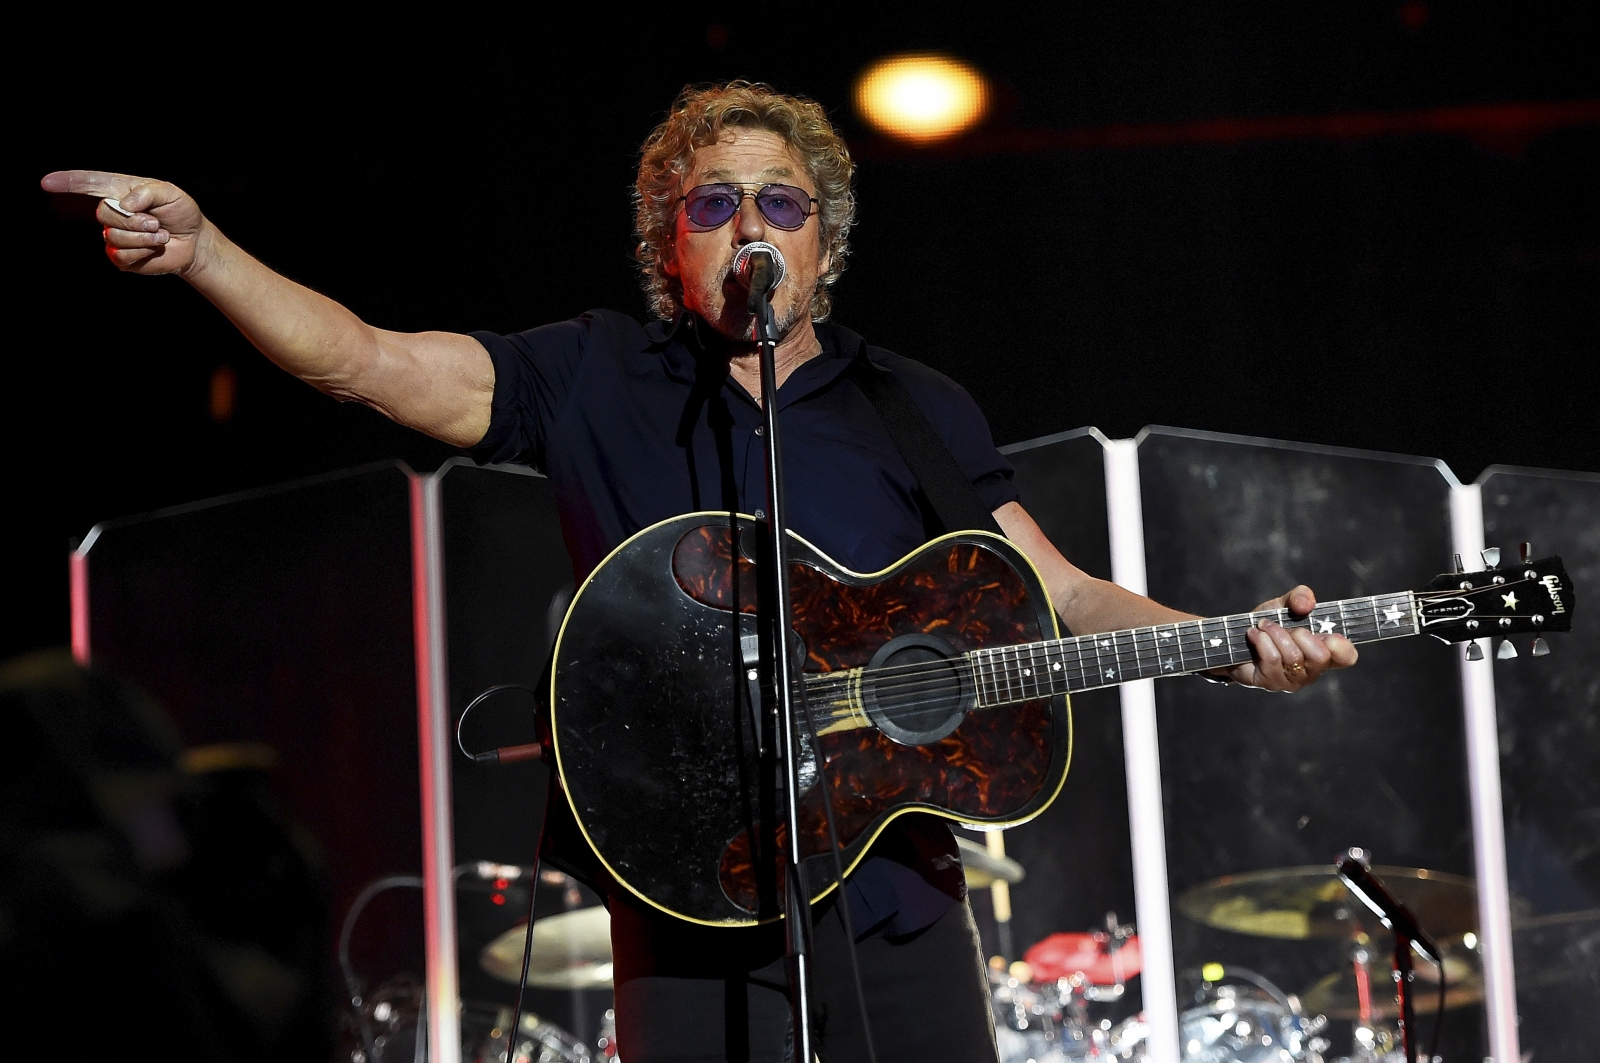 Roger Daltry Glastonbury The Who Pyramid Stage